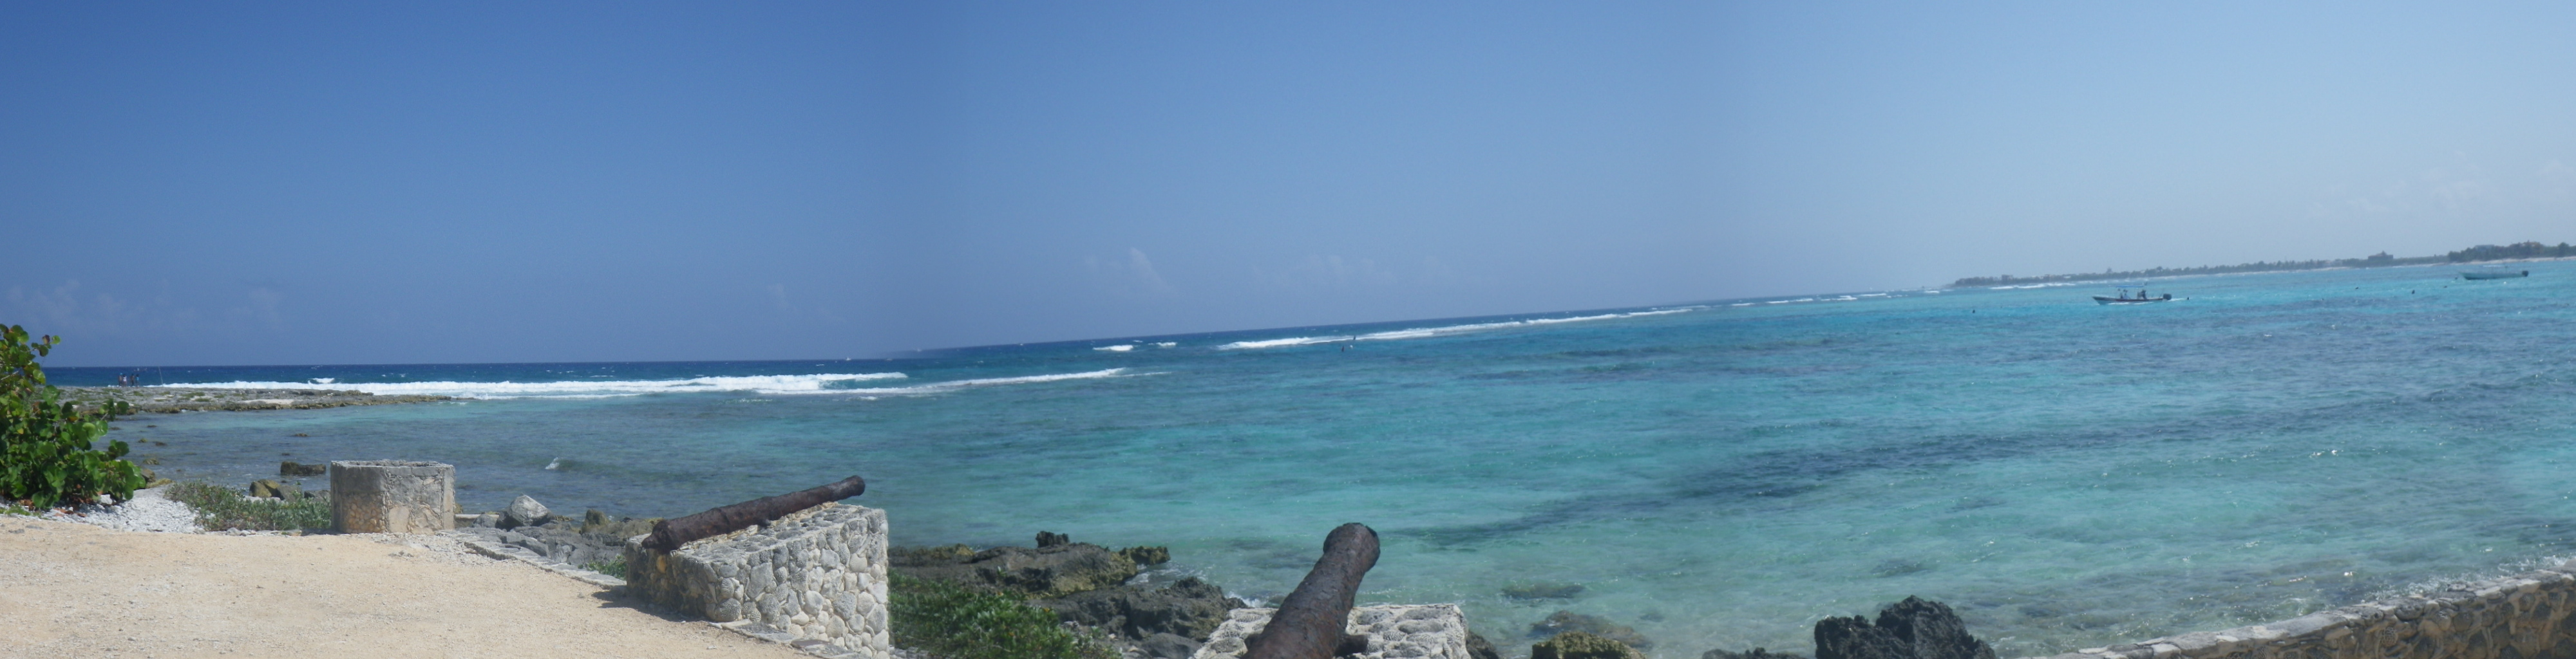 Akumal, beach, travel, expat